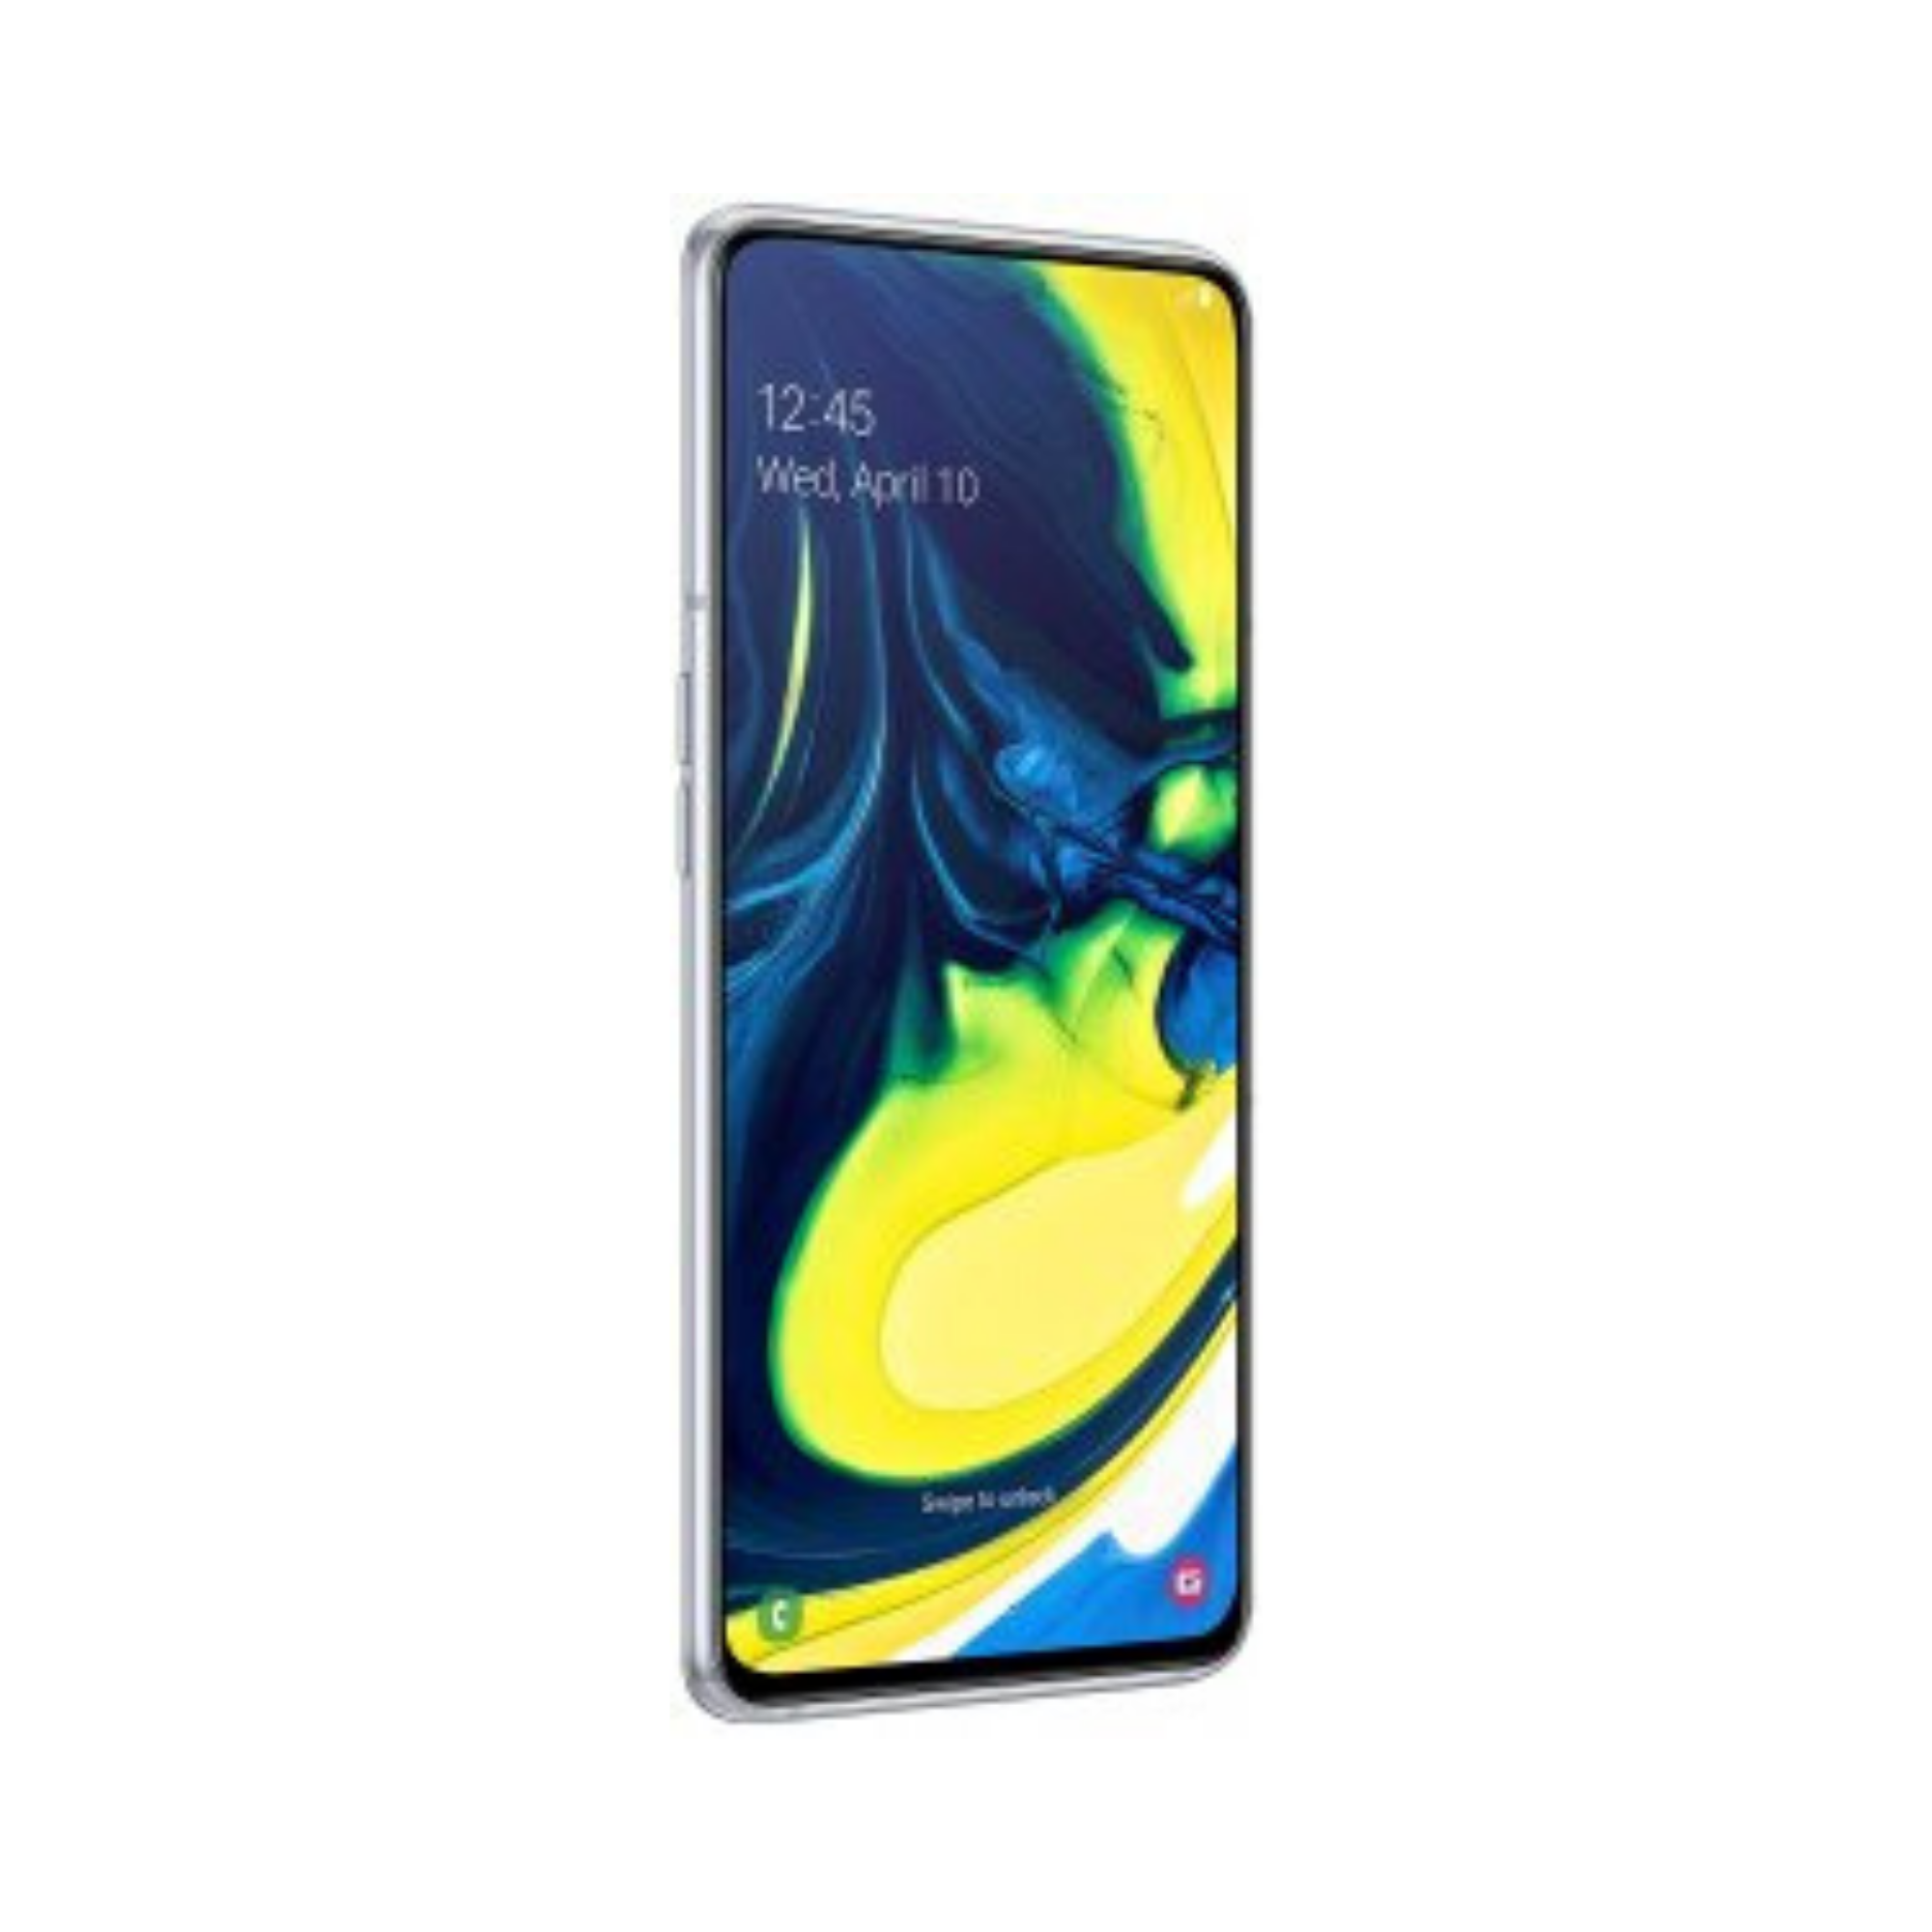 Samsung Galaxy A80 Ghost White, 8GB RAM, 128GB